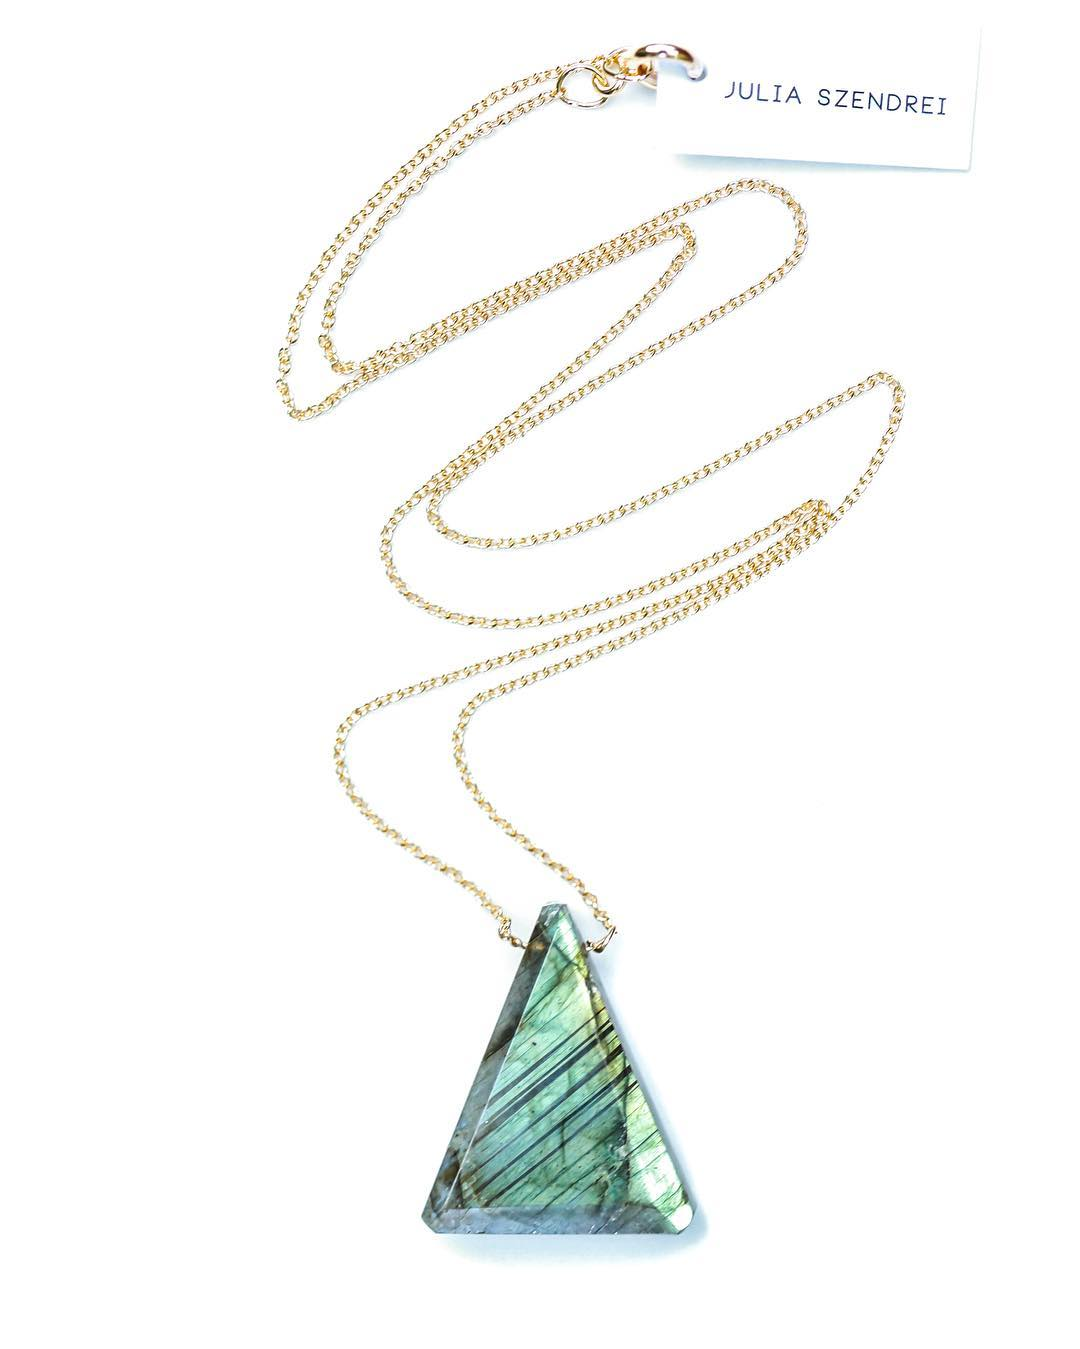 "Labradorite Triangle Necklace.  A custom shape cut for the new larger Gemstones. 18.5"" on Gold  #gold #labradorite #triangle #geometric #shapes #gemstones #crystalgypsy #giftguide #gypsy #mission #mom #mood #bling #heat #hotstone #teamcanon #canon..."